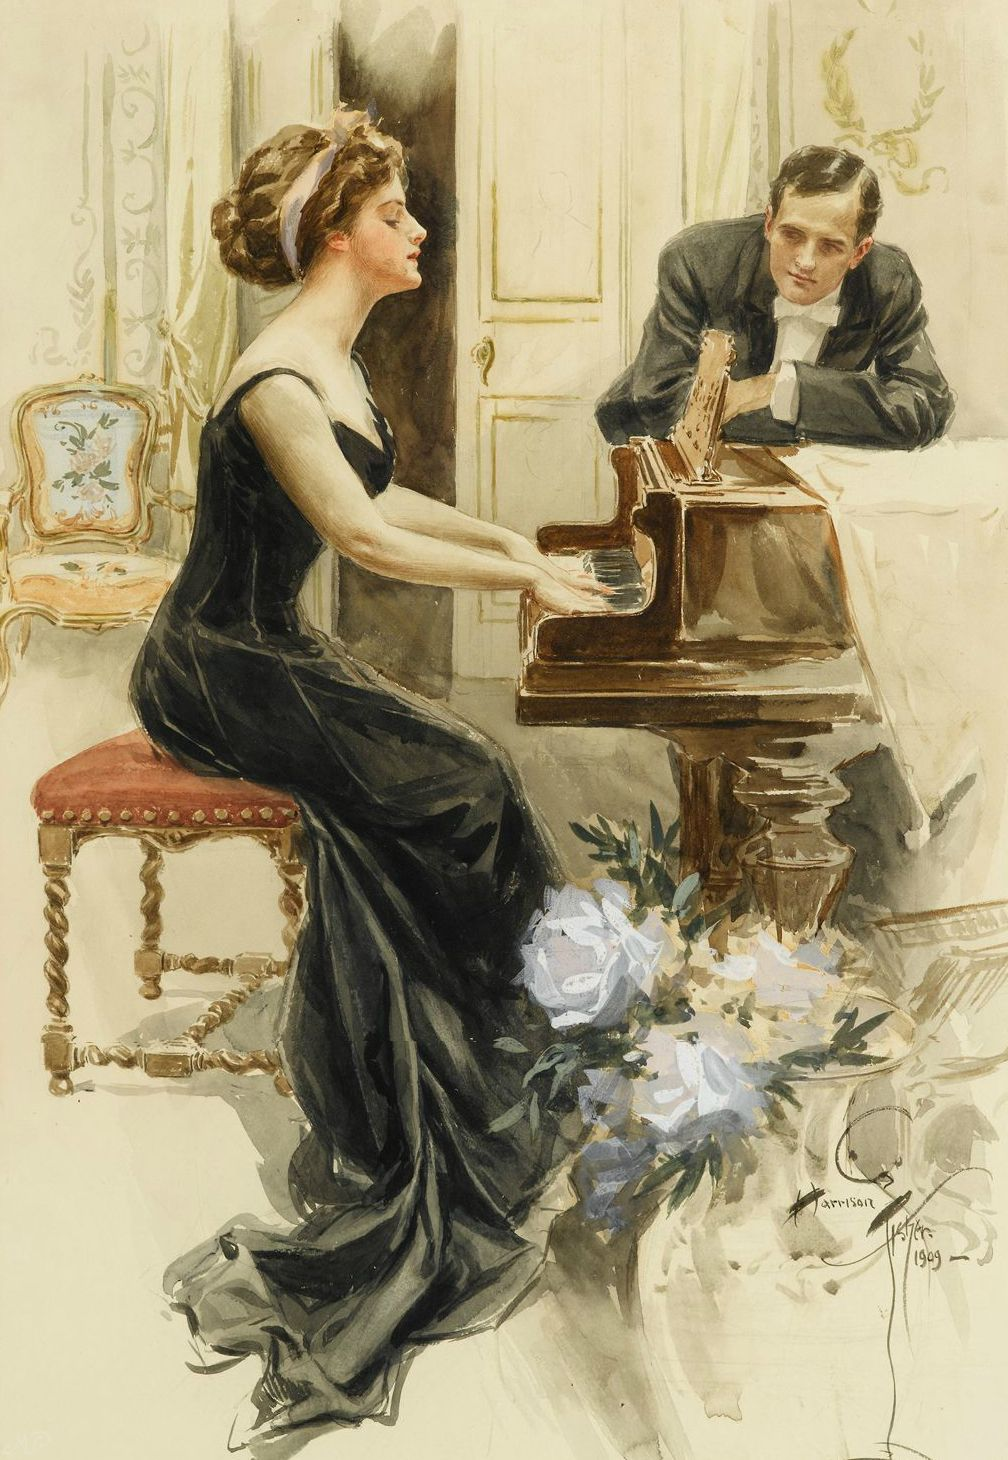 Harrison Fisher (1875 - 1934) - A Lady and her Suitor